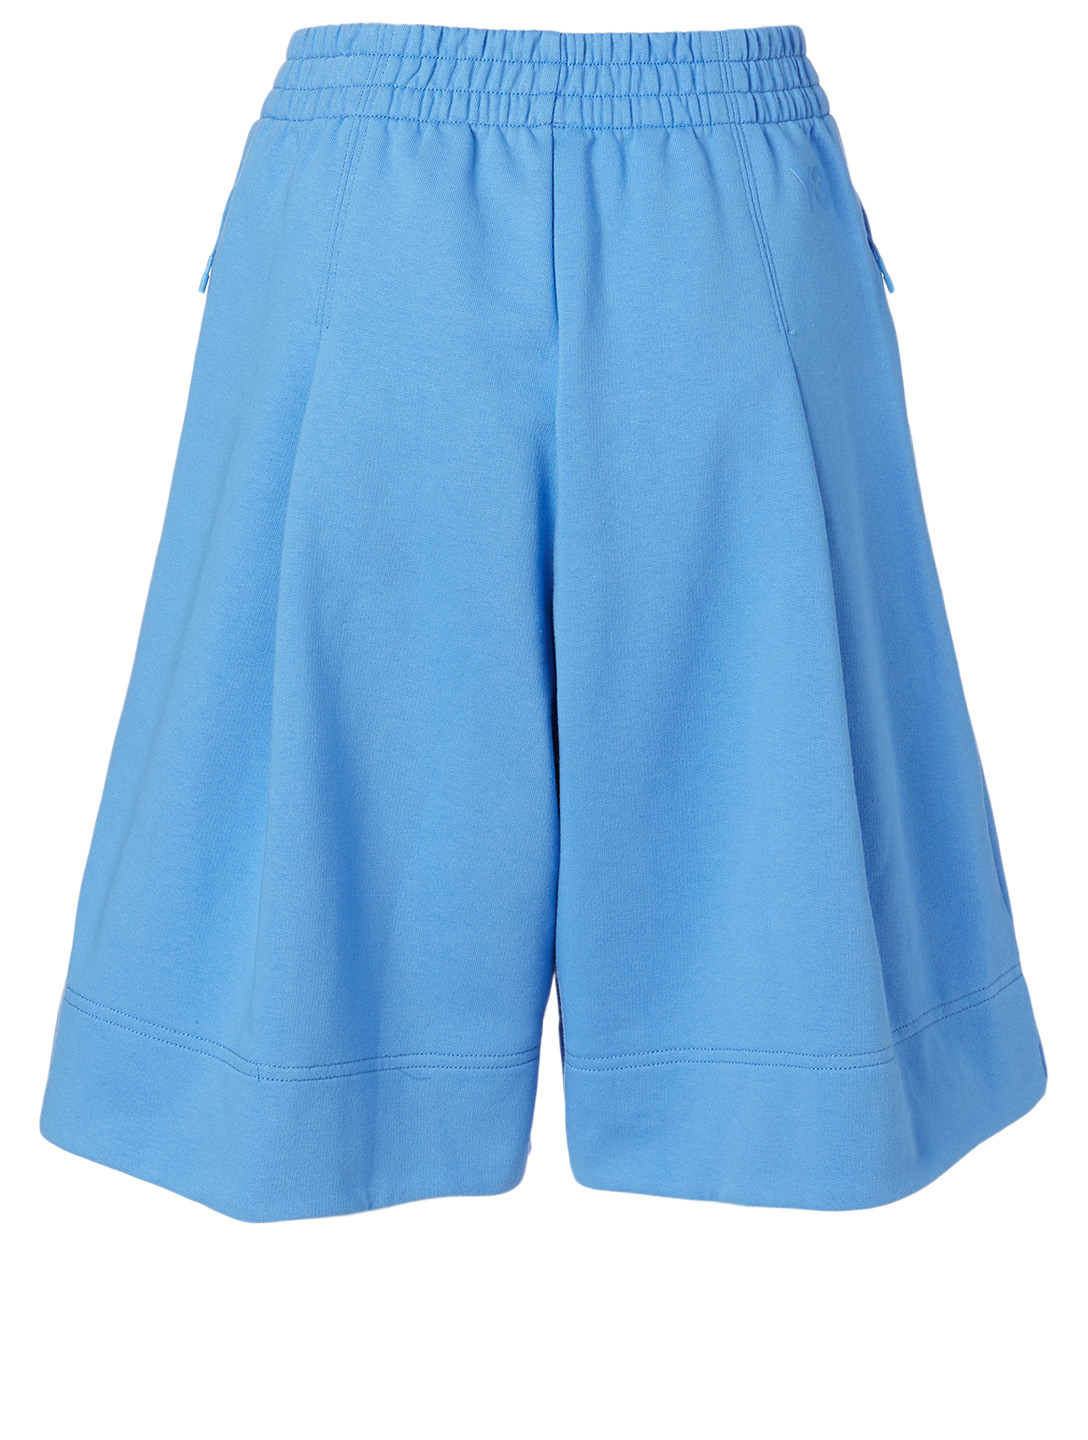 Y-3 French Terry Cotton Wide-Leg Shorts Women's Blue